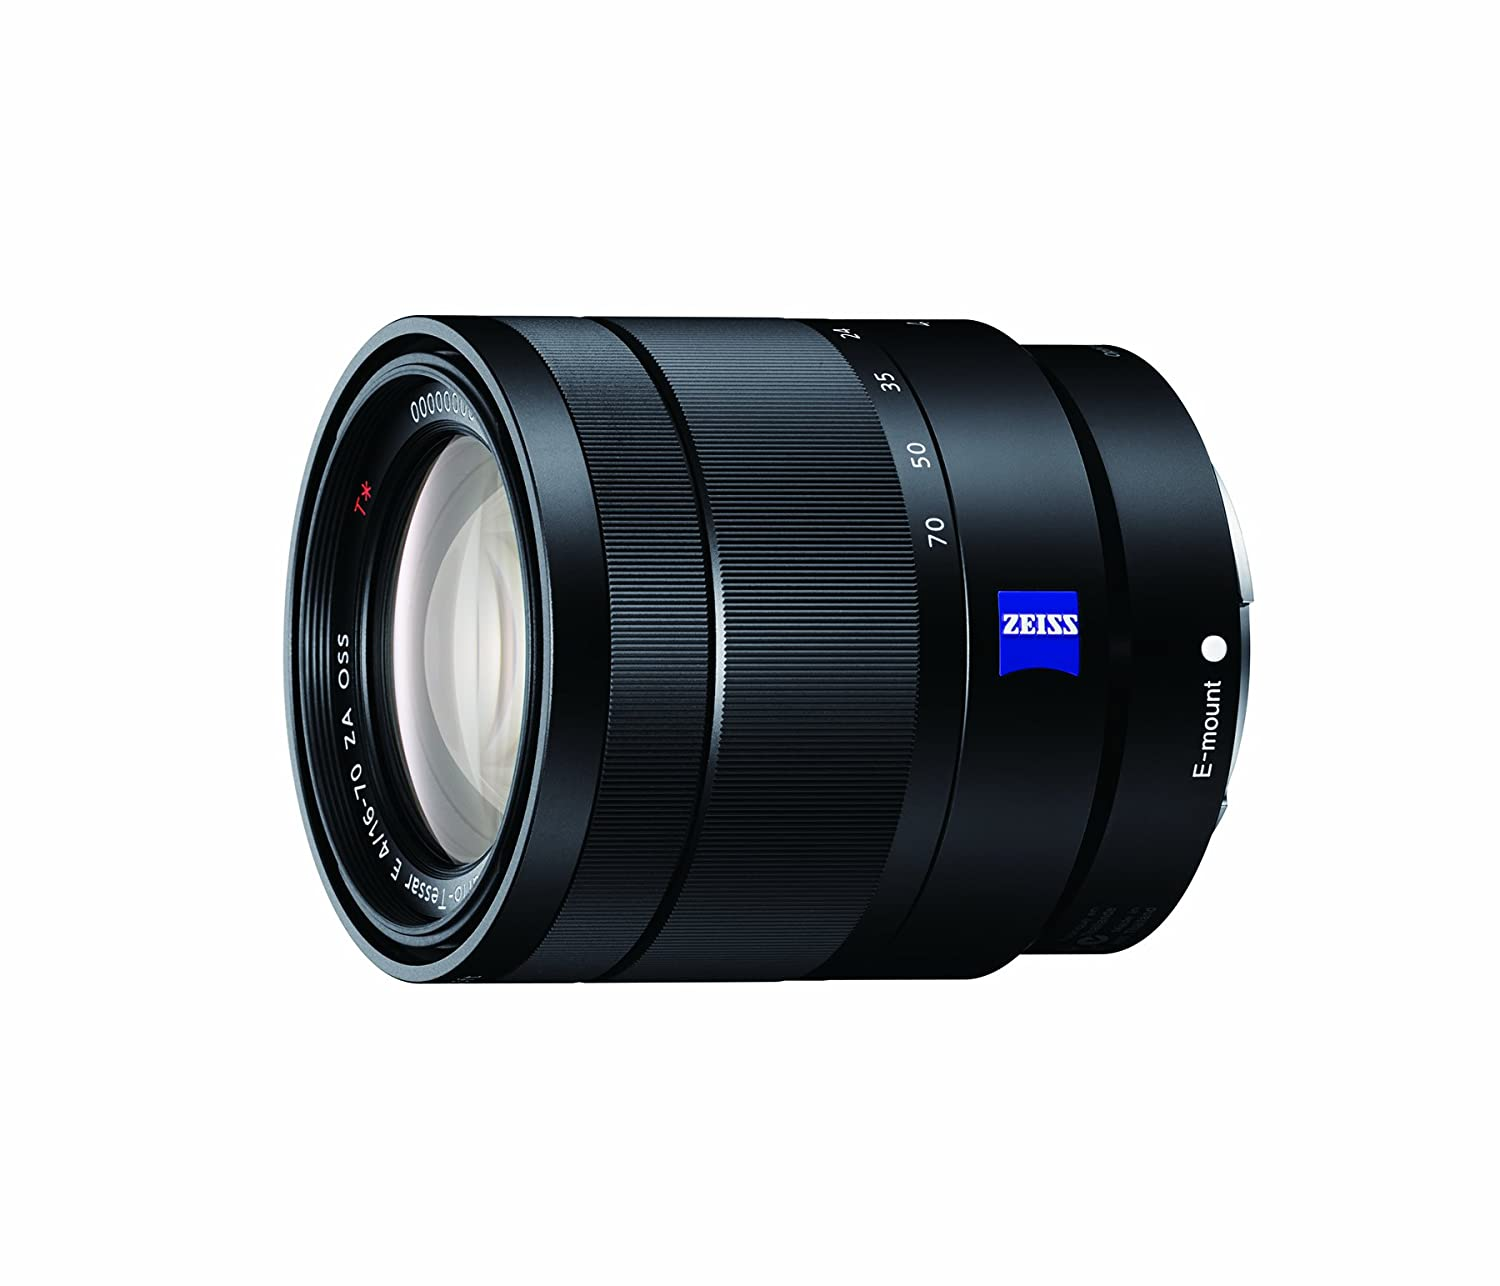 Best Lens for Travel Photography - Zeiss